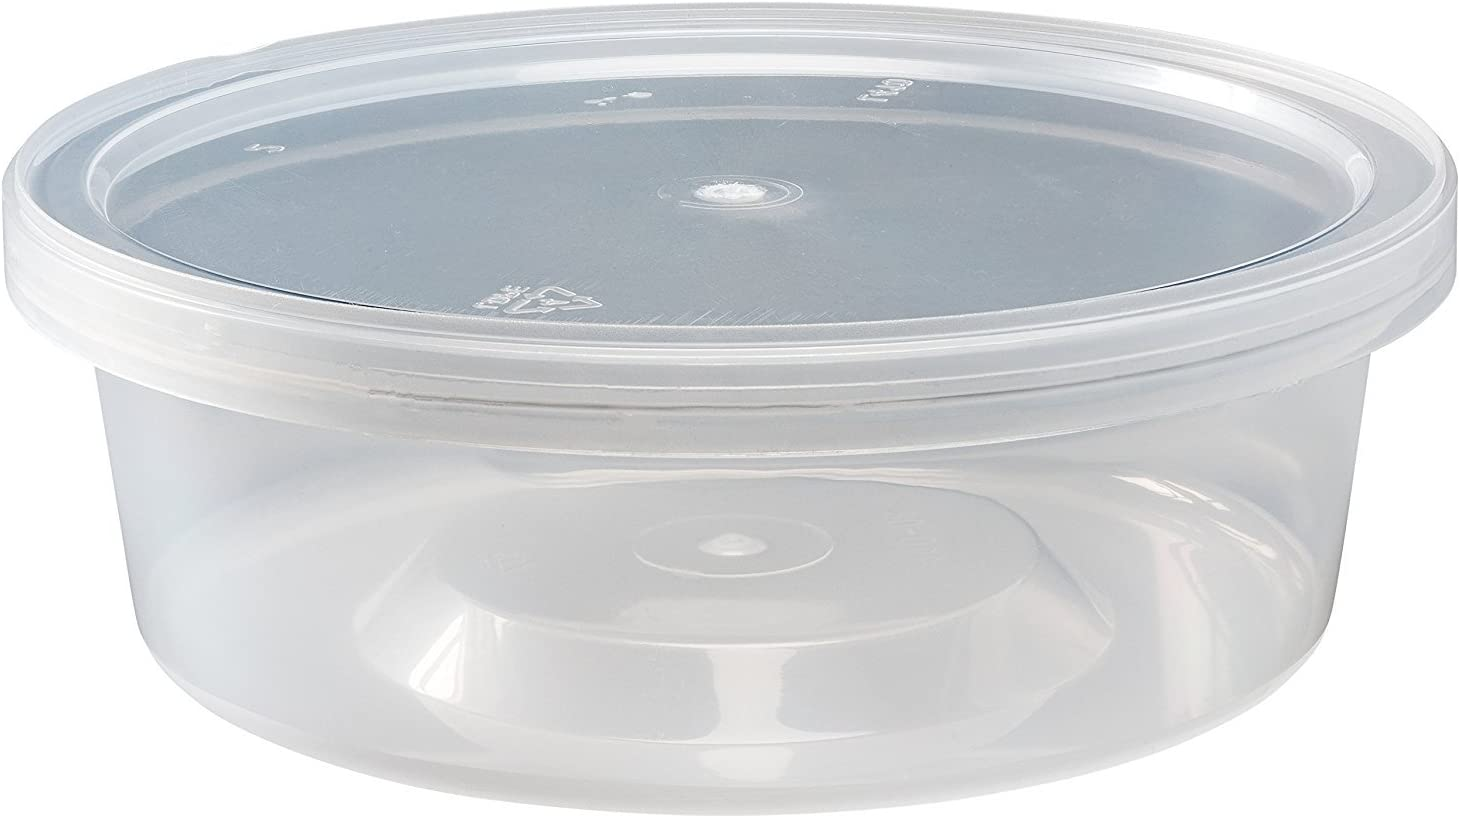 Pack of 40 Food Deli Containers with Lids (8 oz.) – Leak Proof, Microwaveable, Clear Meal Prep Storage Boxes – Top in the Industry Premium Quality - by DCS Deals